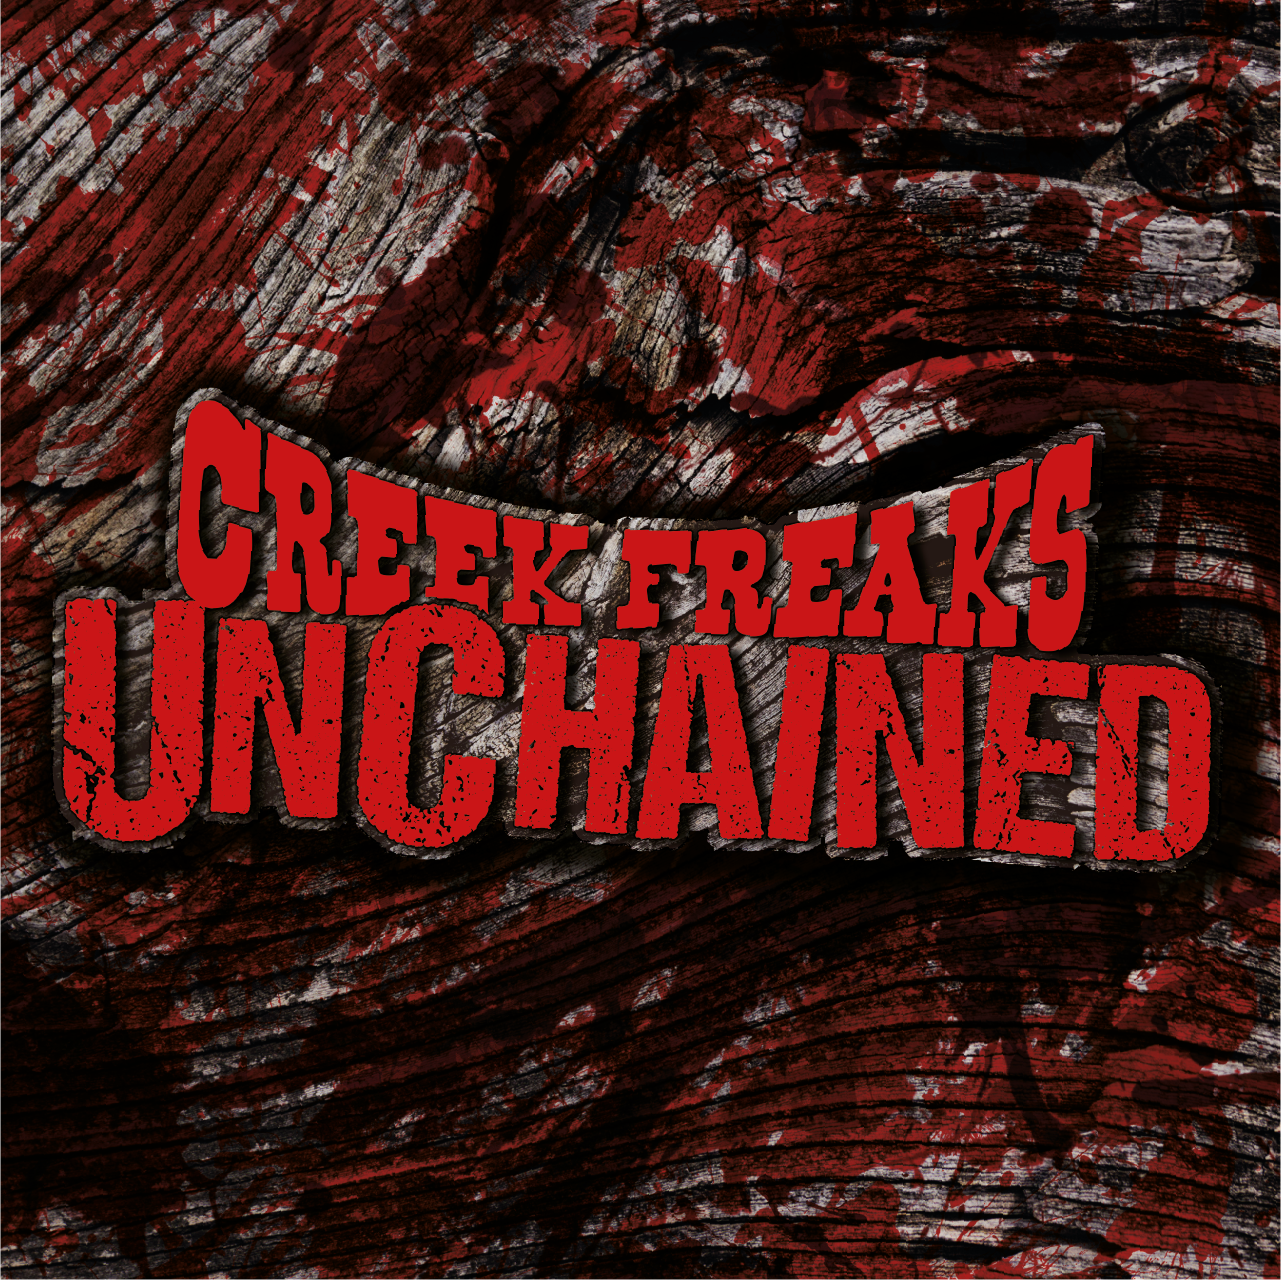 Creek Freaks: Unchained Scare Zone